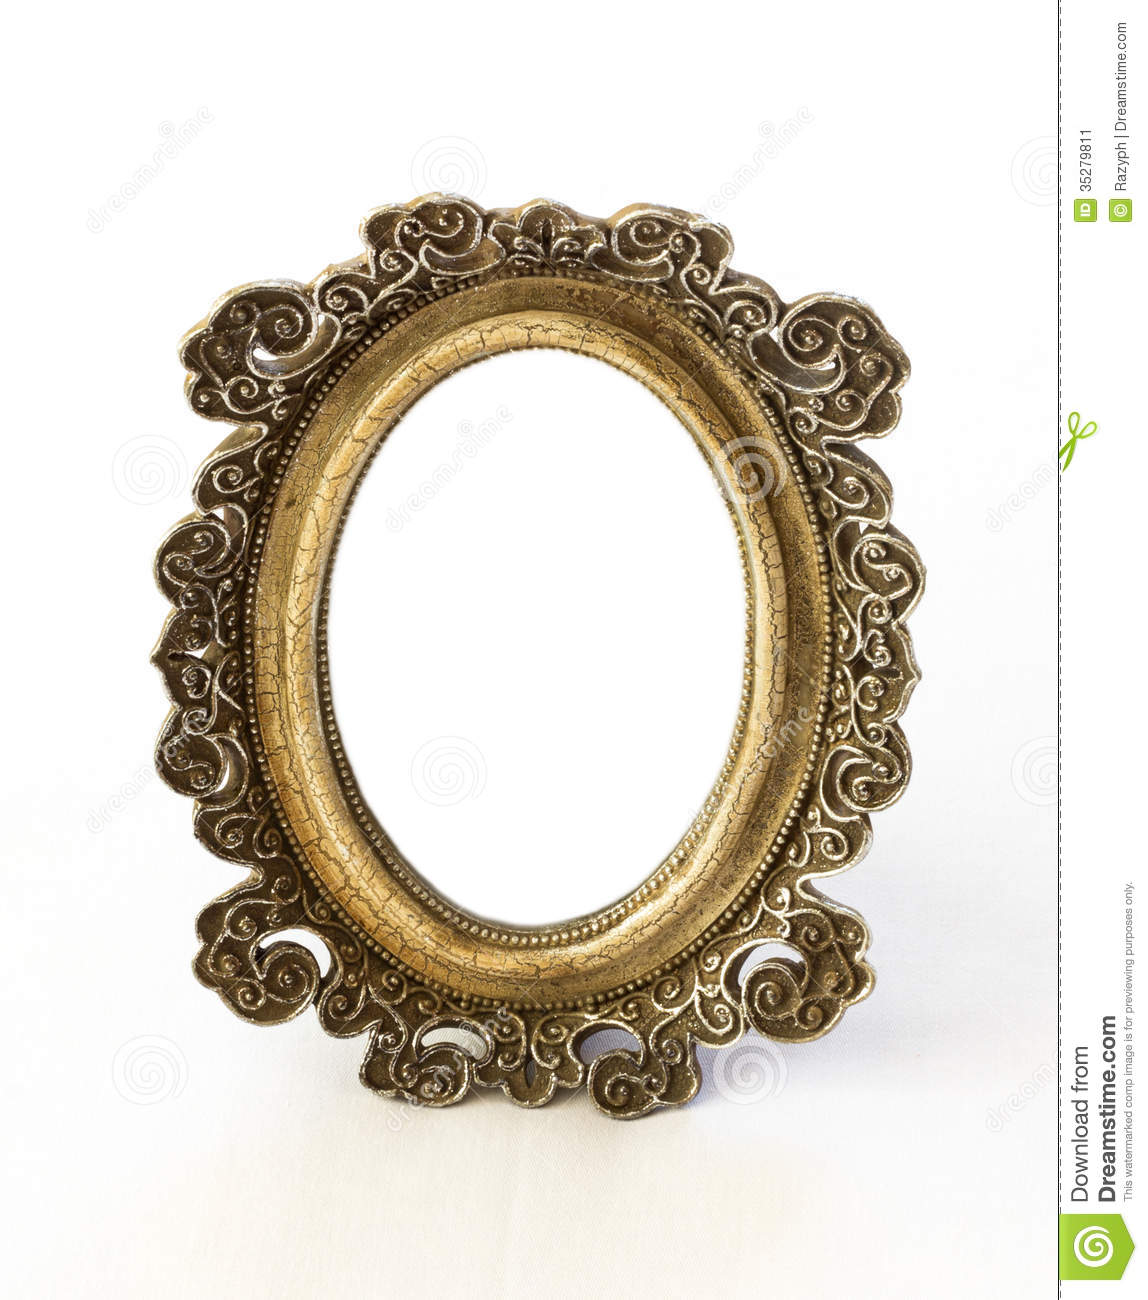 Train Equipment furthermore Brompton furthermore Watch likewise Stock Image Vintage Mirror Decoration Isolated White Image35279811 furthermore Turboexpander. on electric motor animation